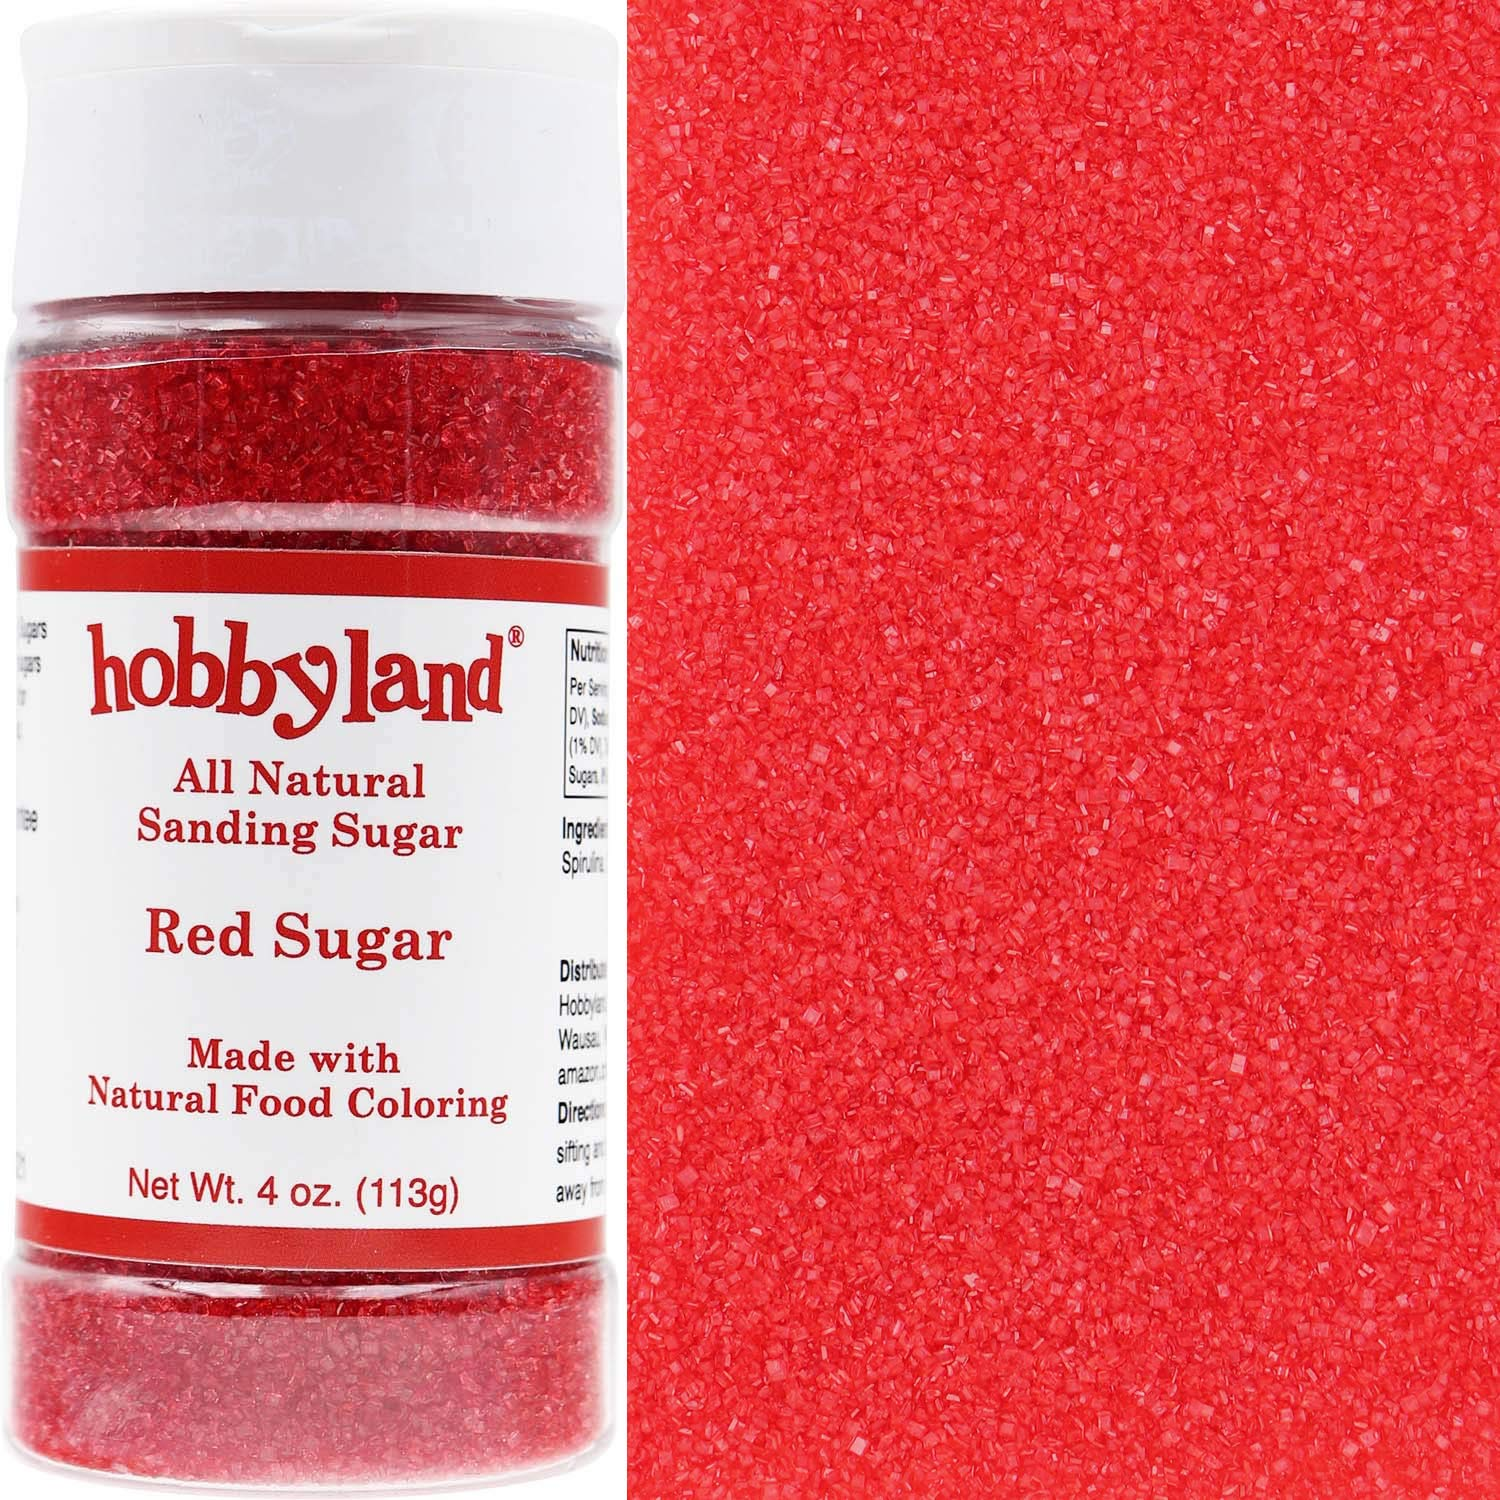 Hobbyland Sanding Sugar (Red Sugar, 4 oz) Handcrafted with All Natural Food Coloring